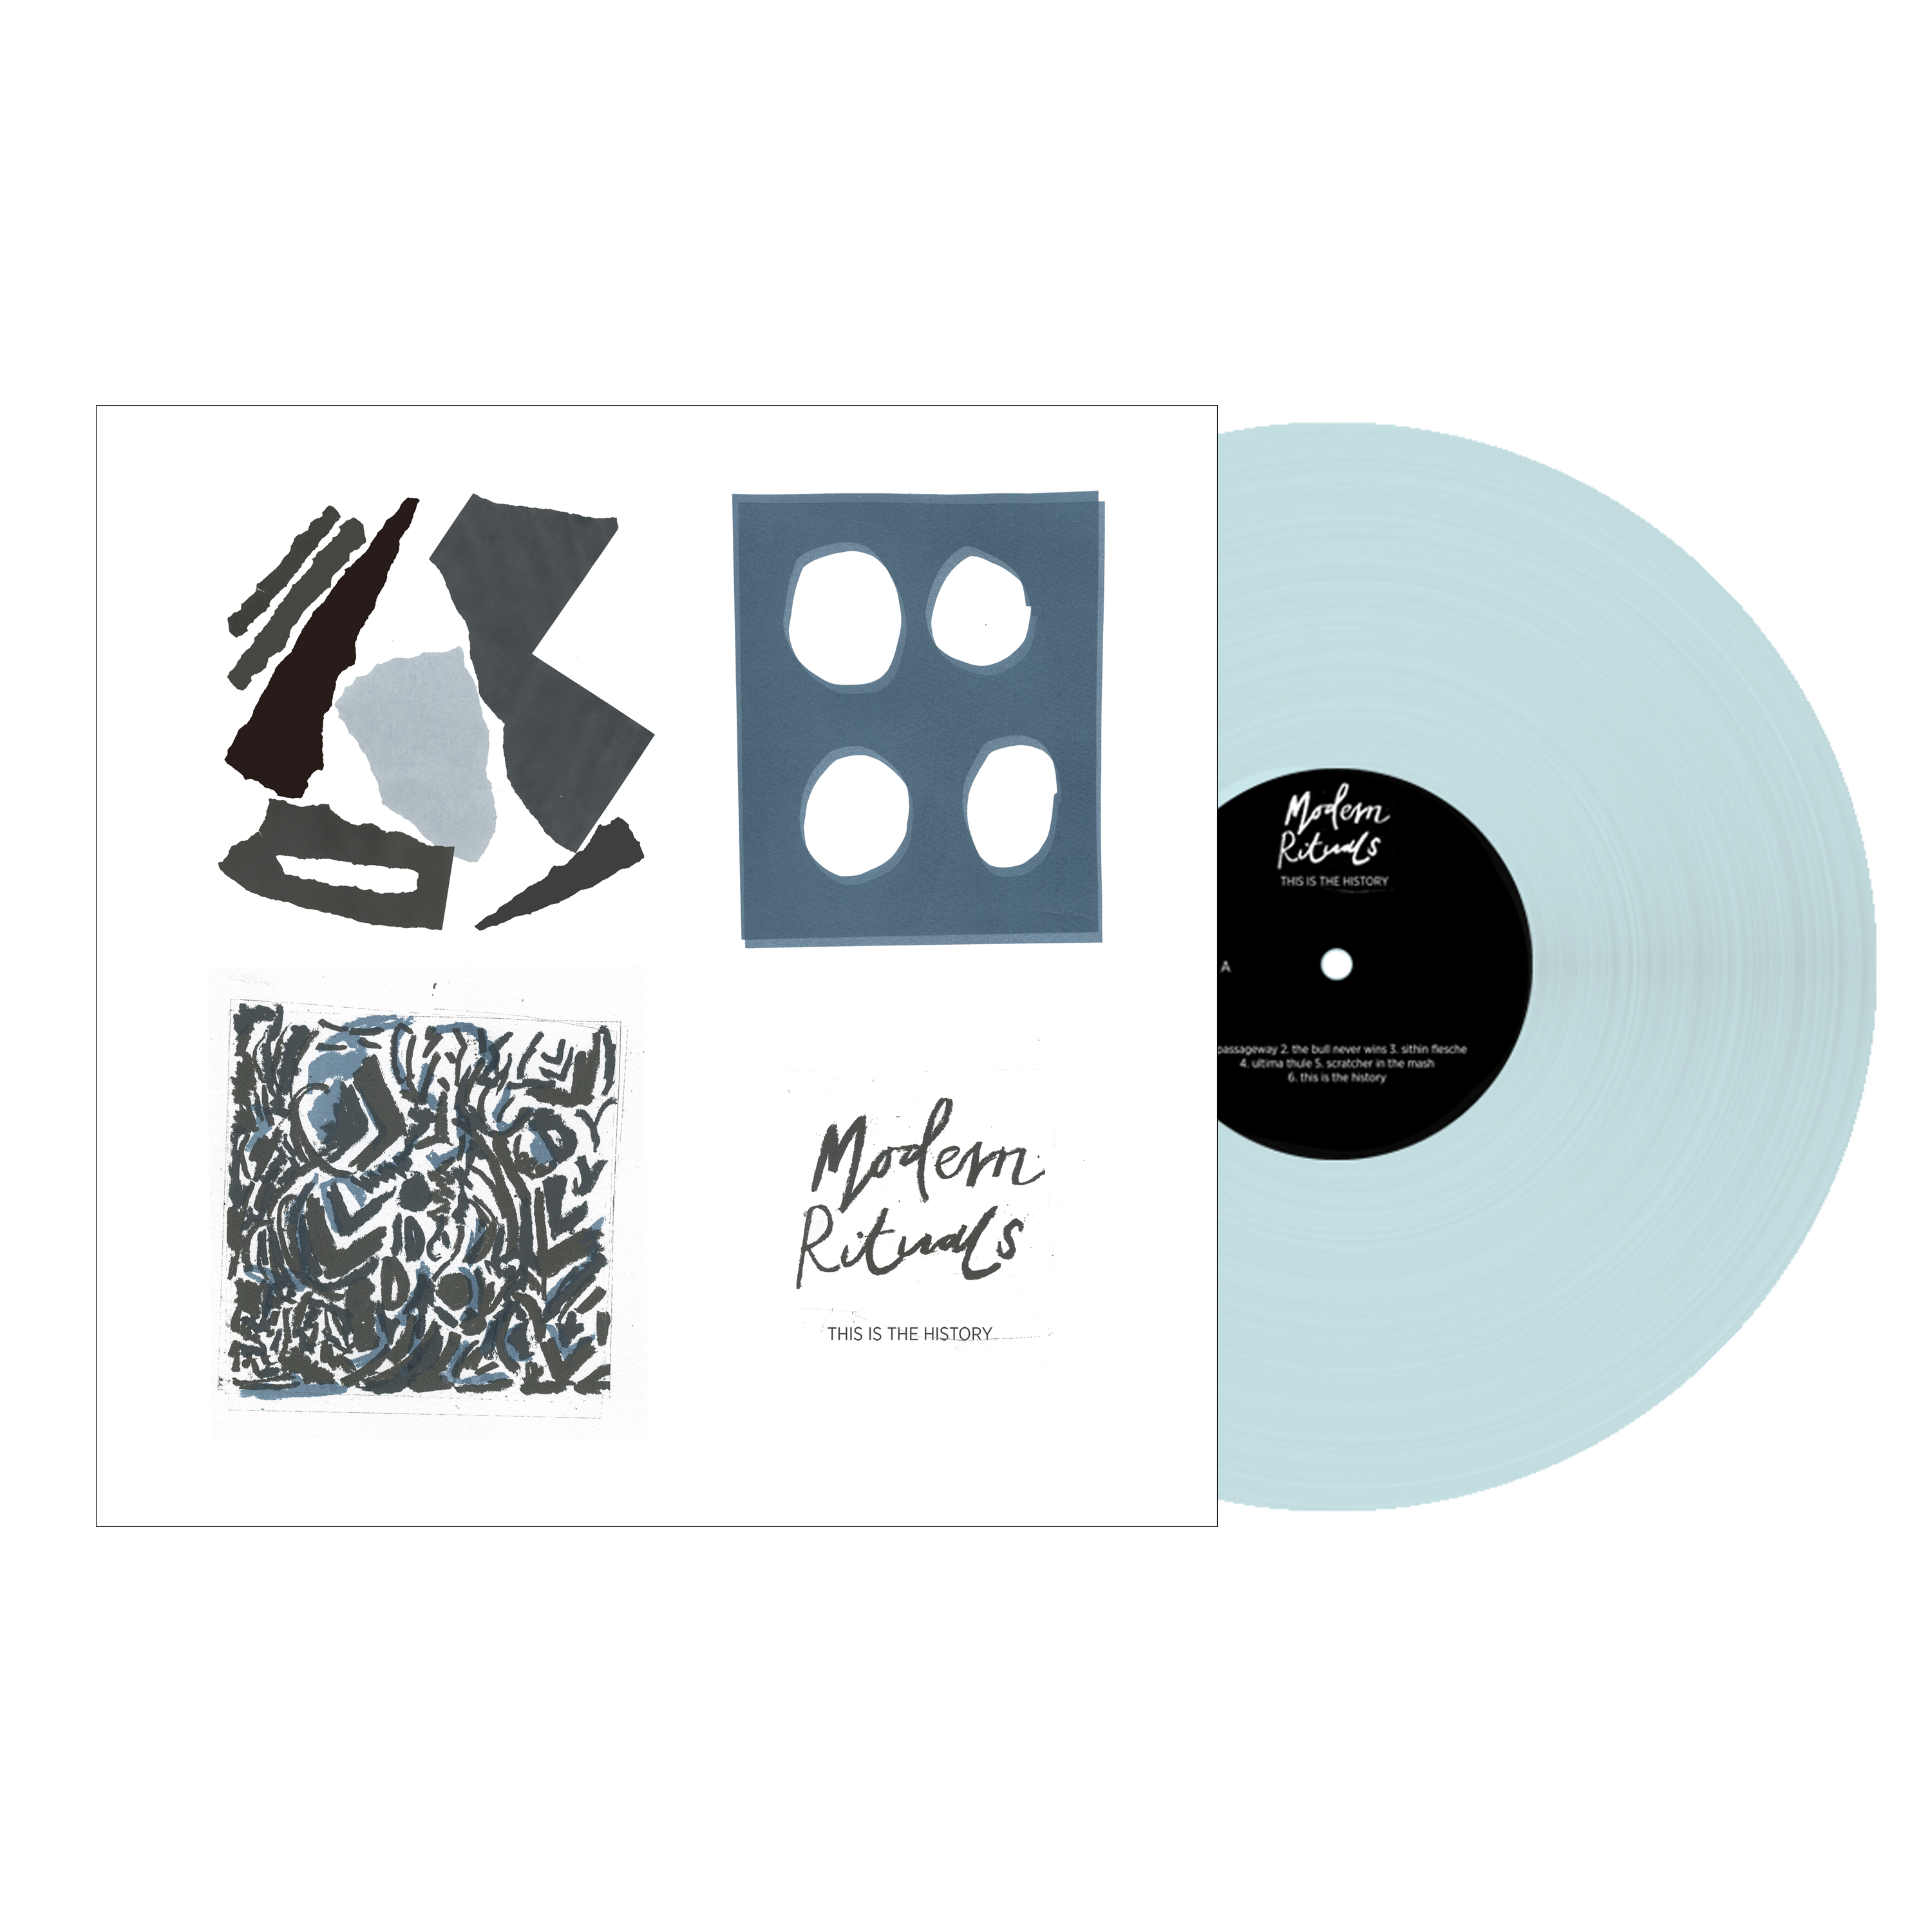 Modern Rituals - This Is The History PREORDER